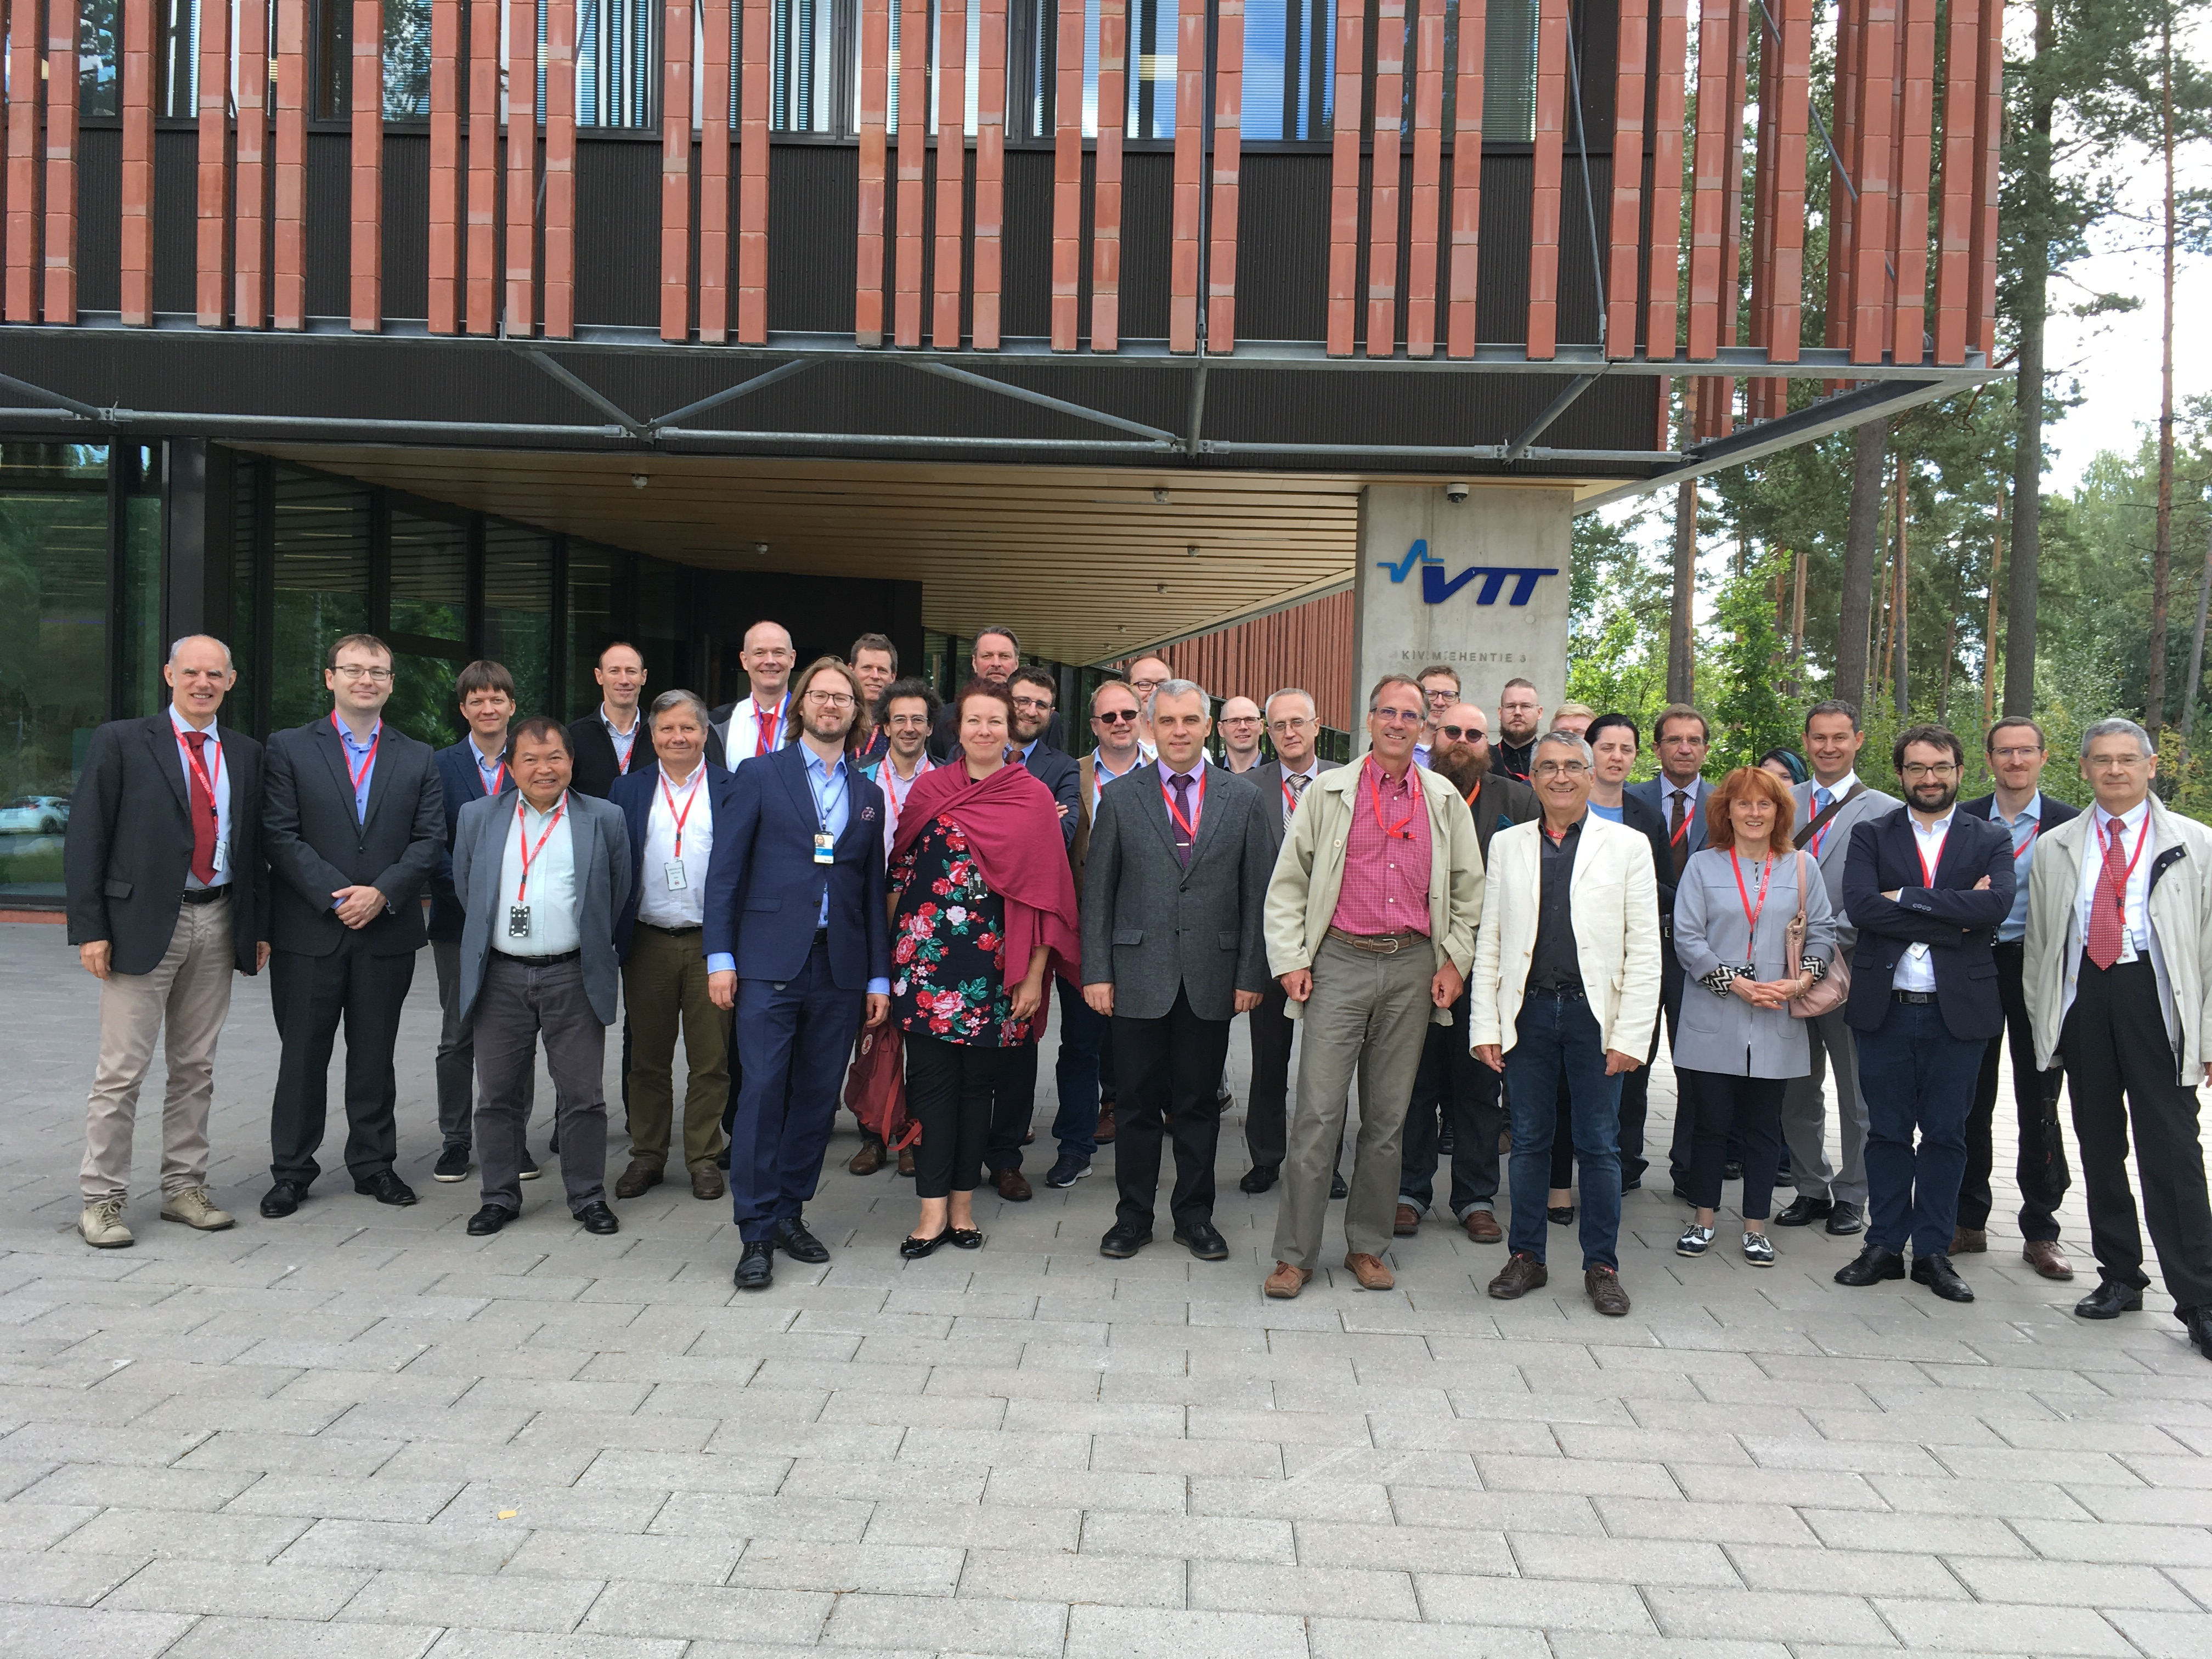 ELSMOR kick-off participants in front of VTT Centre for Nuclear Safety in September 2019. (© VTT)